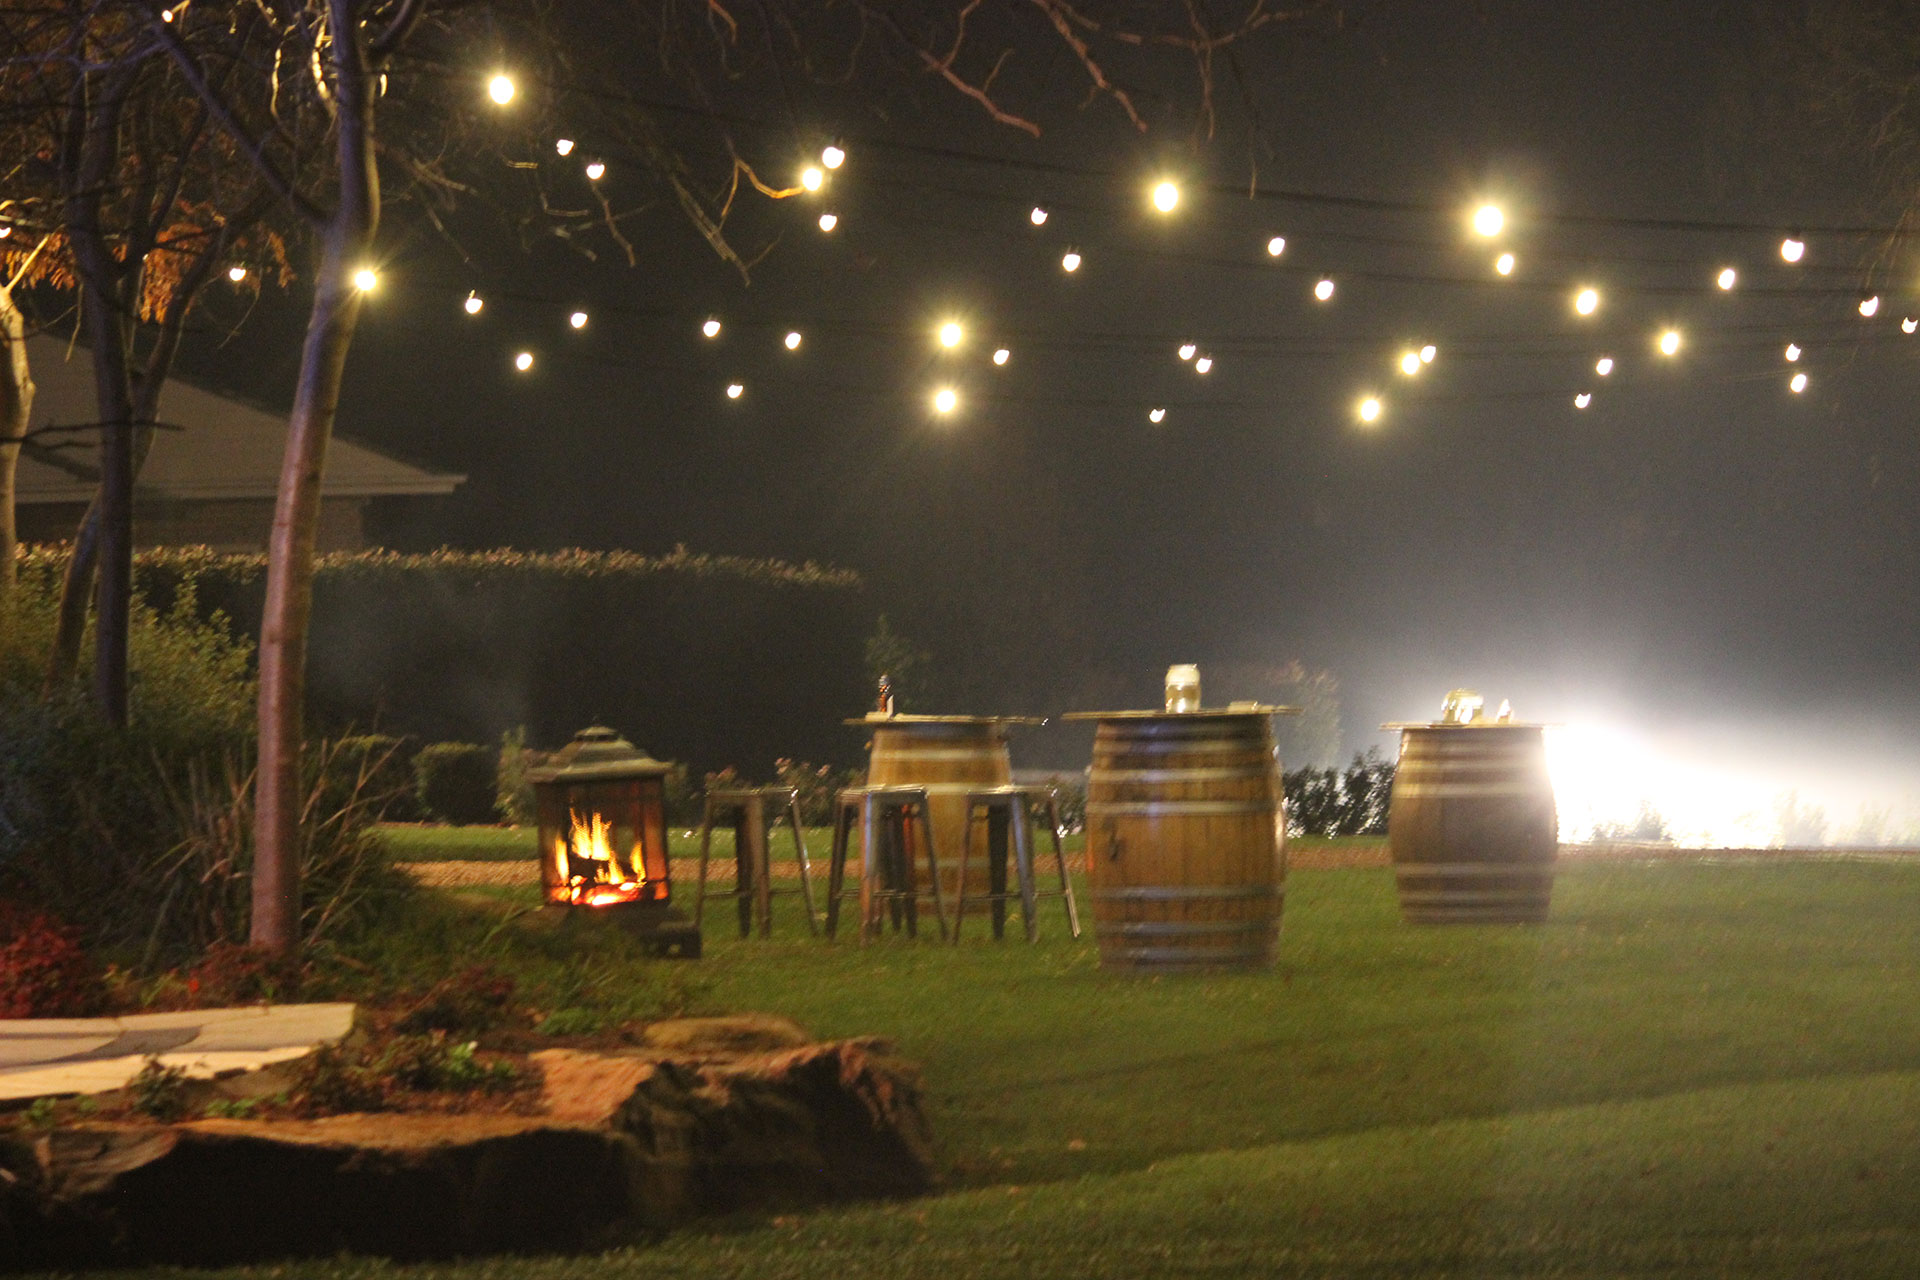 Outdoor Festoon Lights Two brothers events co adelaide tipi furniture lighting hire adelaide hills howard vineyard festoon lighting hire workwithnaturefo